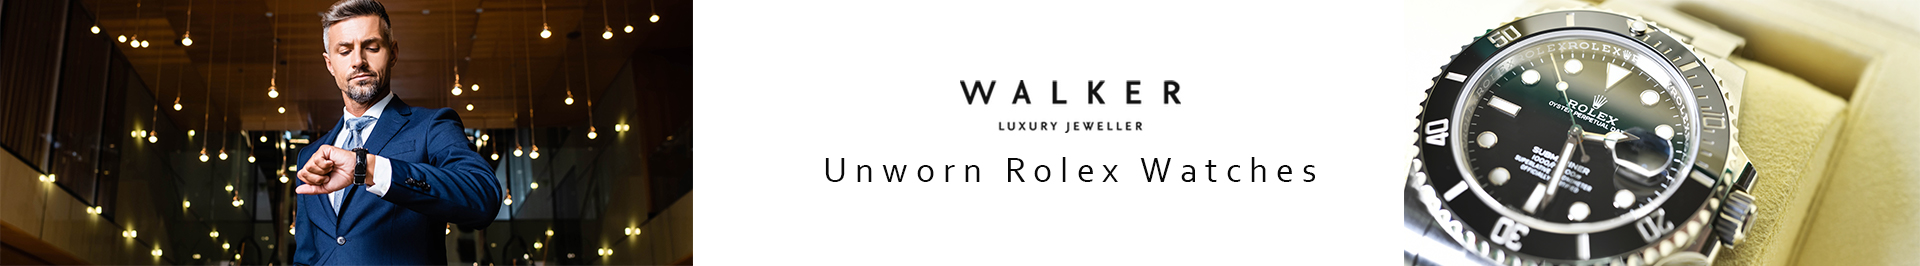 PRE-OWNED WATCHES ROLEX